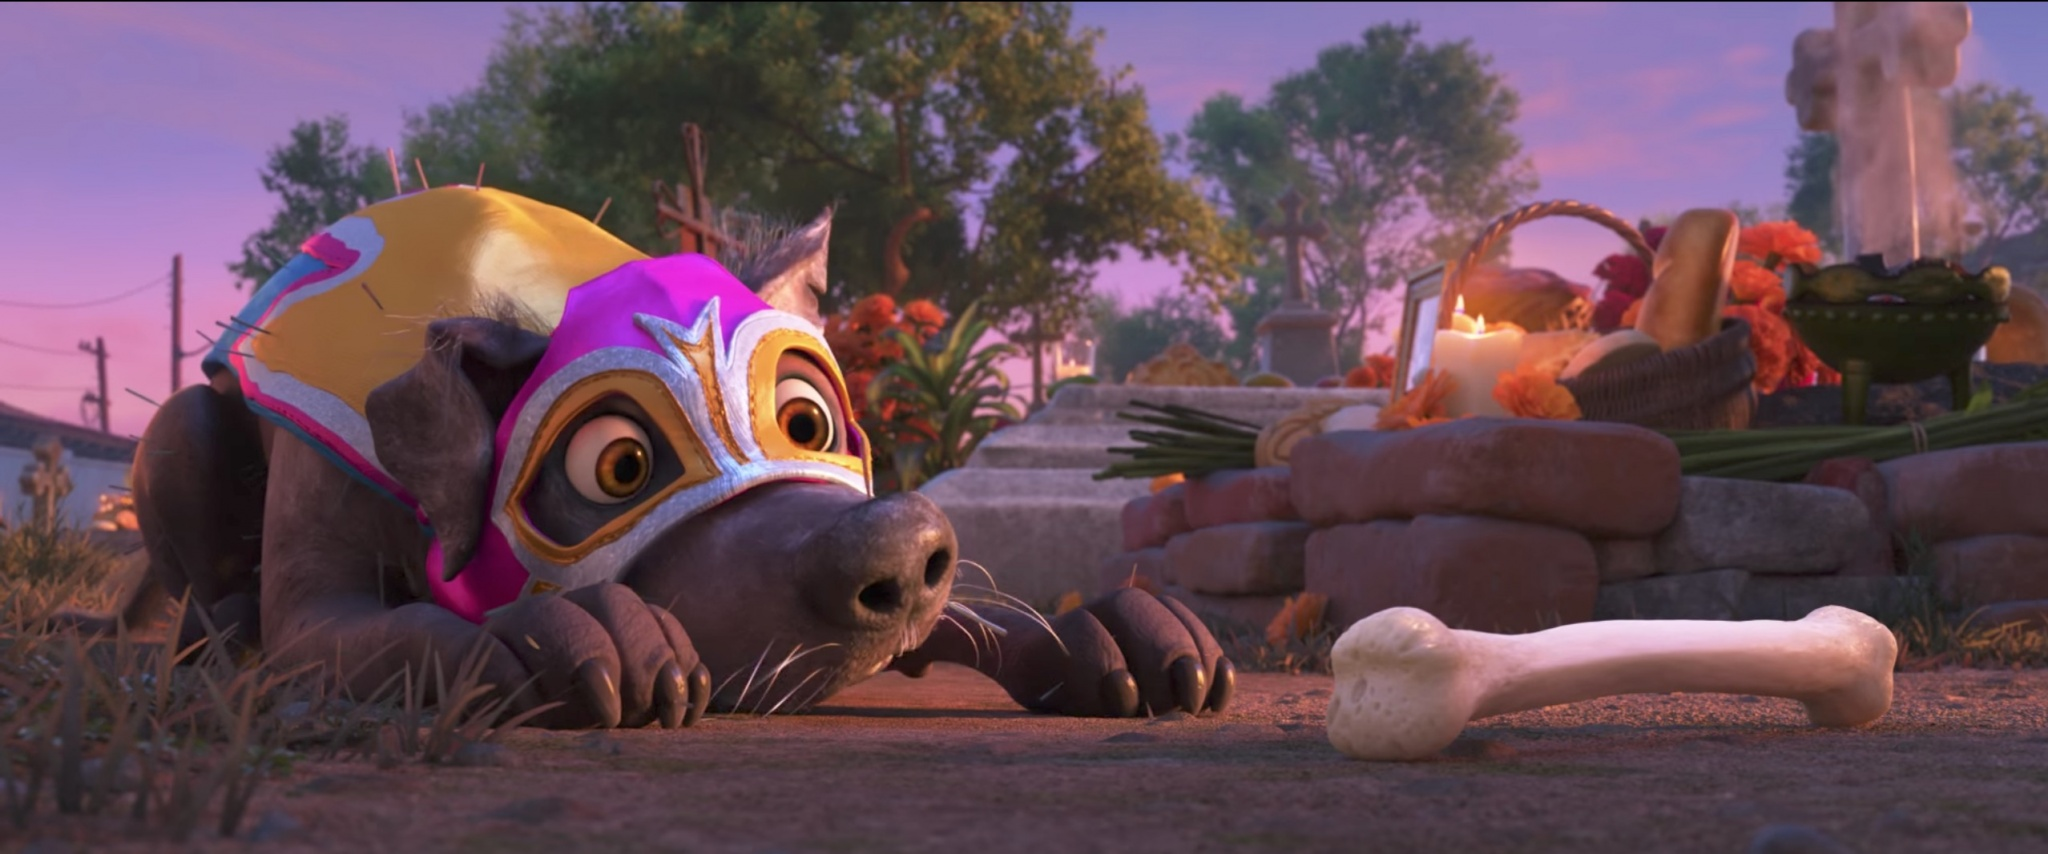 10 Interesting Facts About Coco S Character Dante